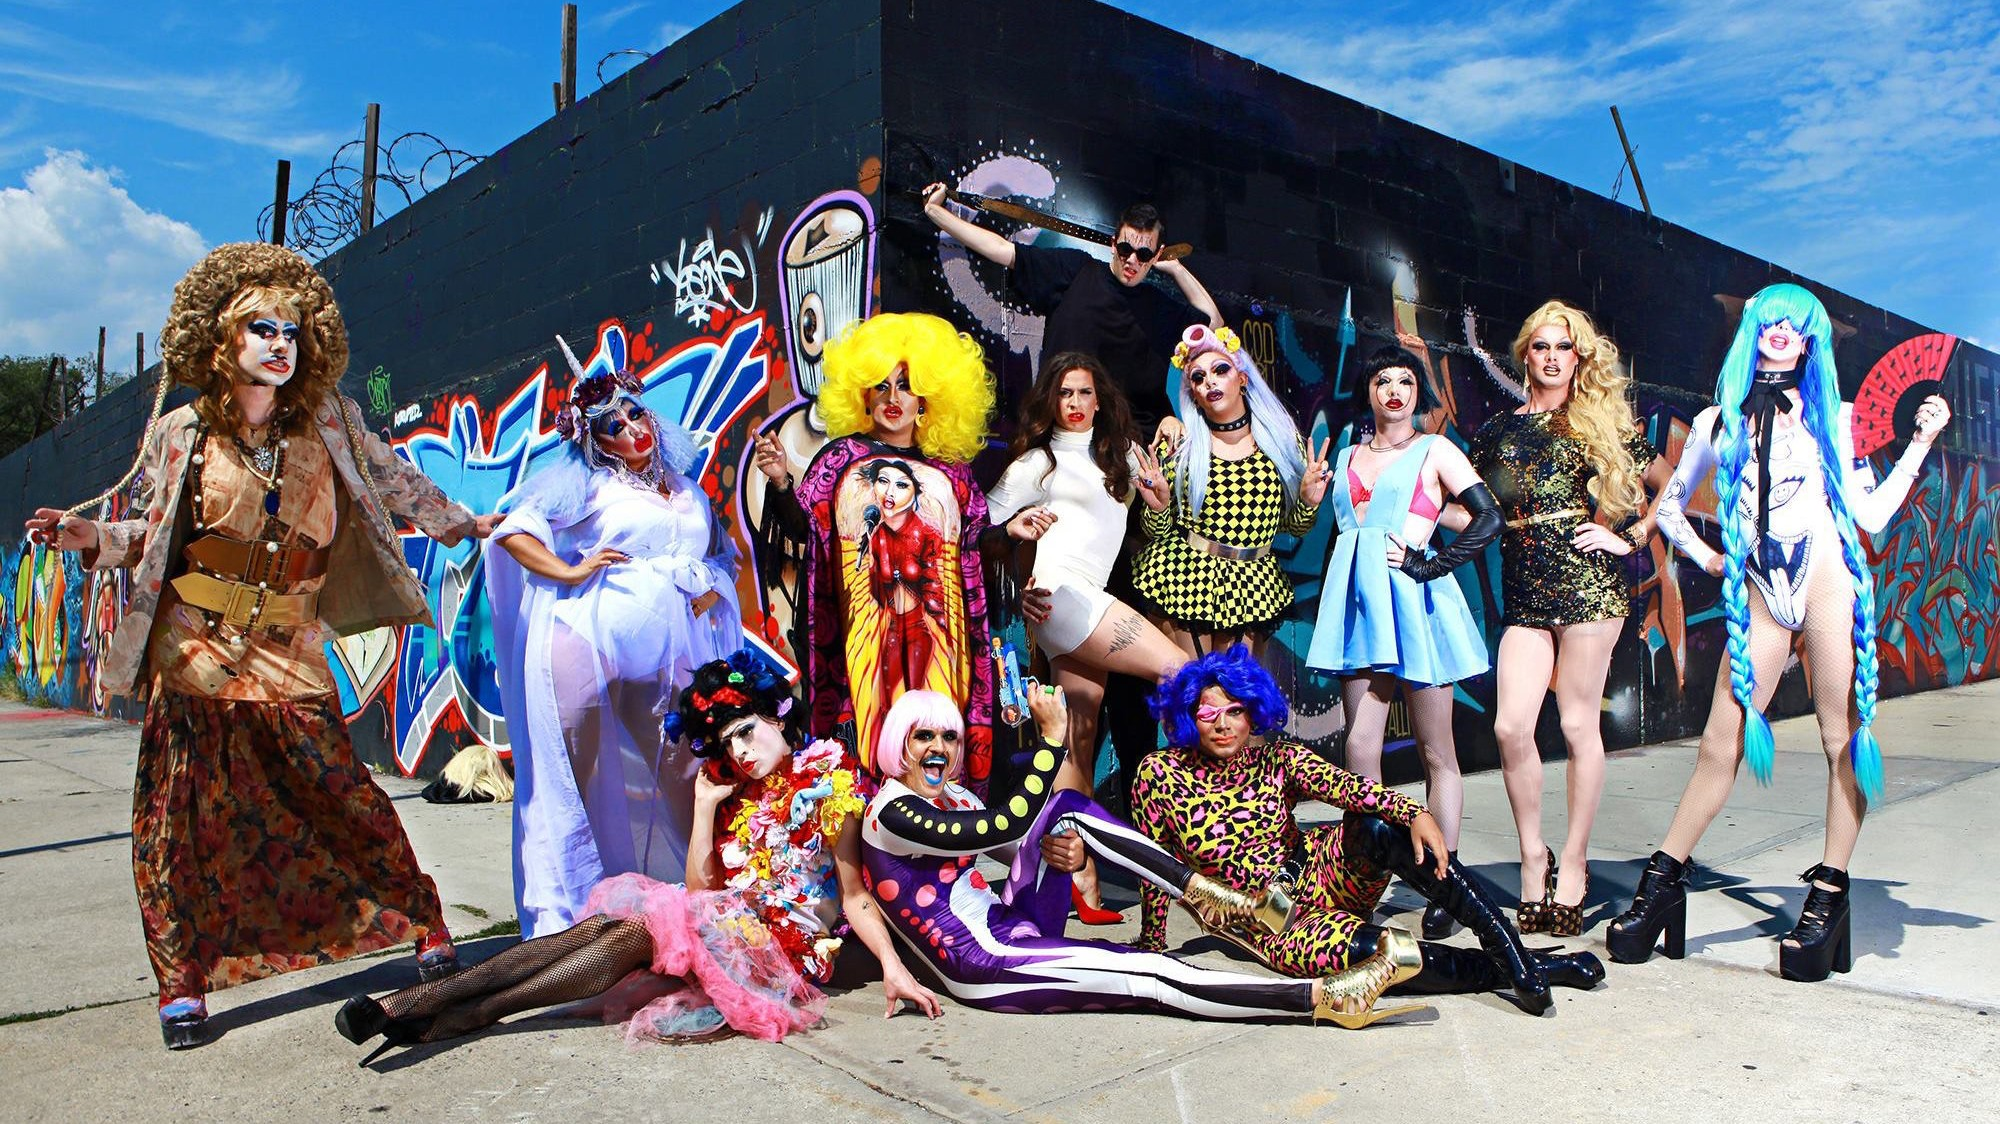 Bushwig's Founders Say Gentrification Has Pushed the Annual Drag Festival out of Brooklyn